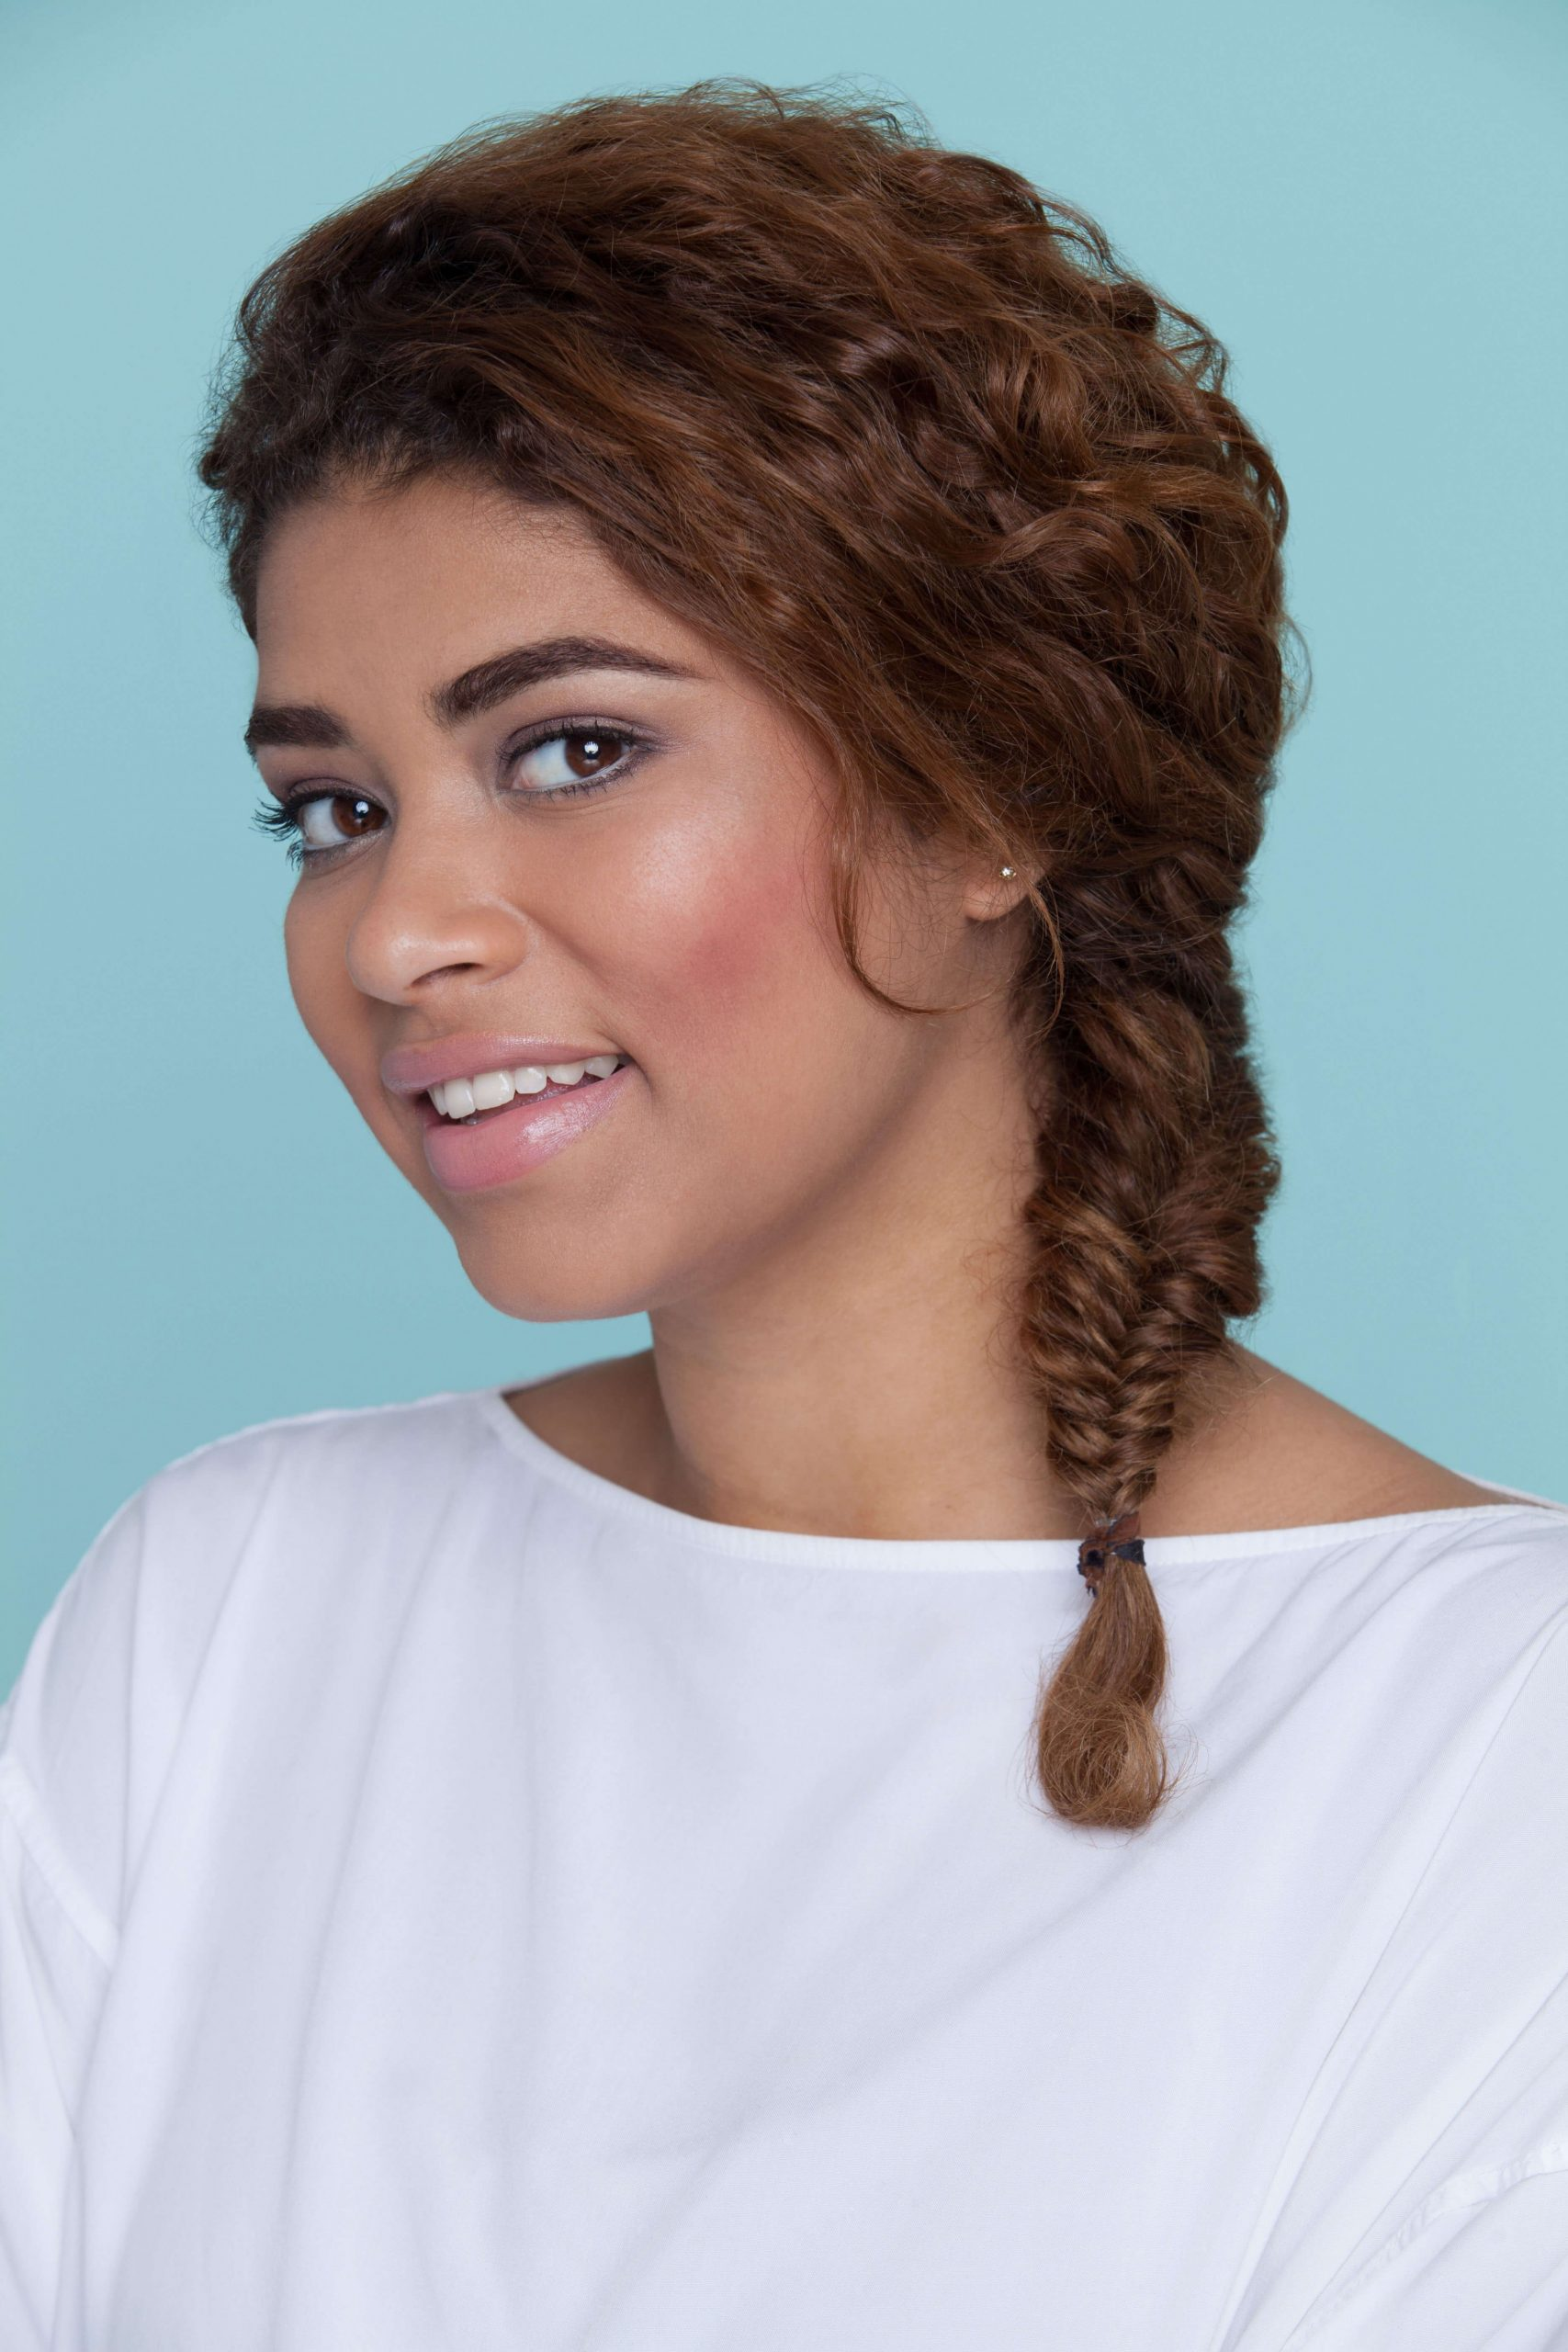 Thick Curly Hair: 10 Easy And Modern Hairstyles We Love Hairstyles For Wavy Curly Hair